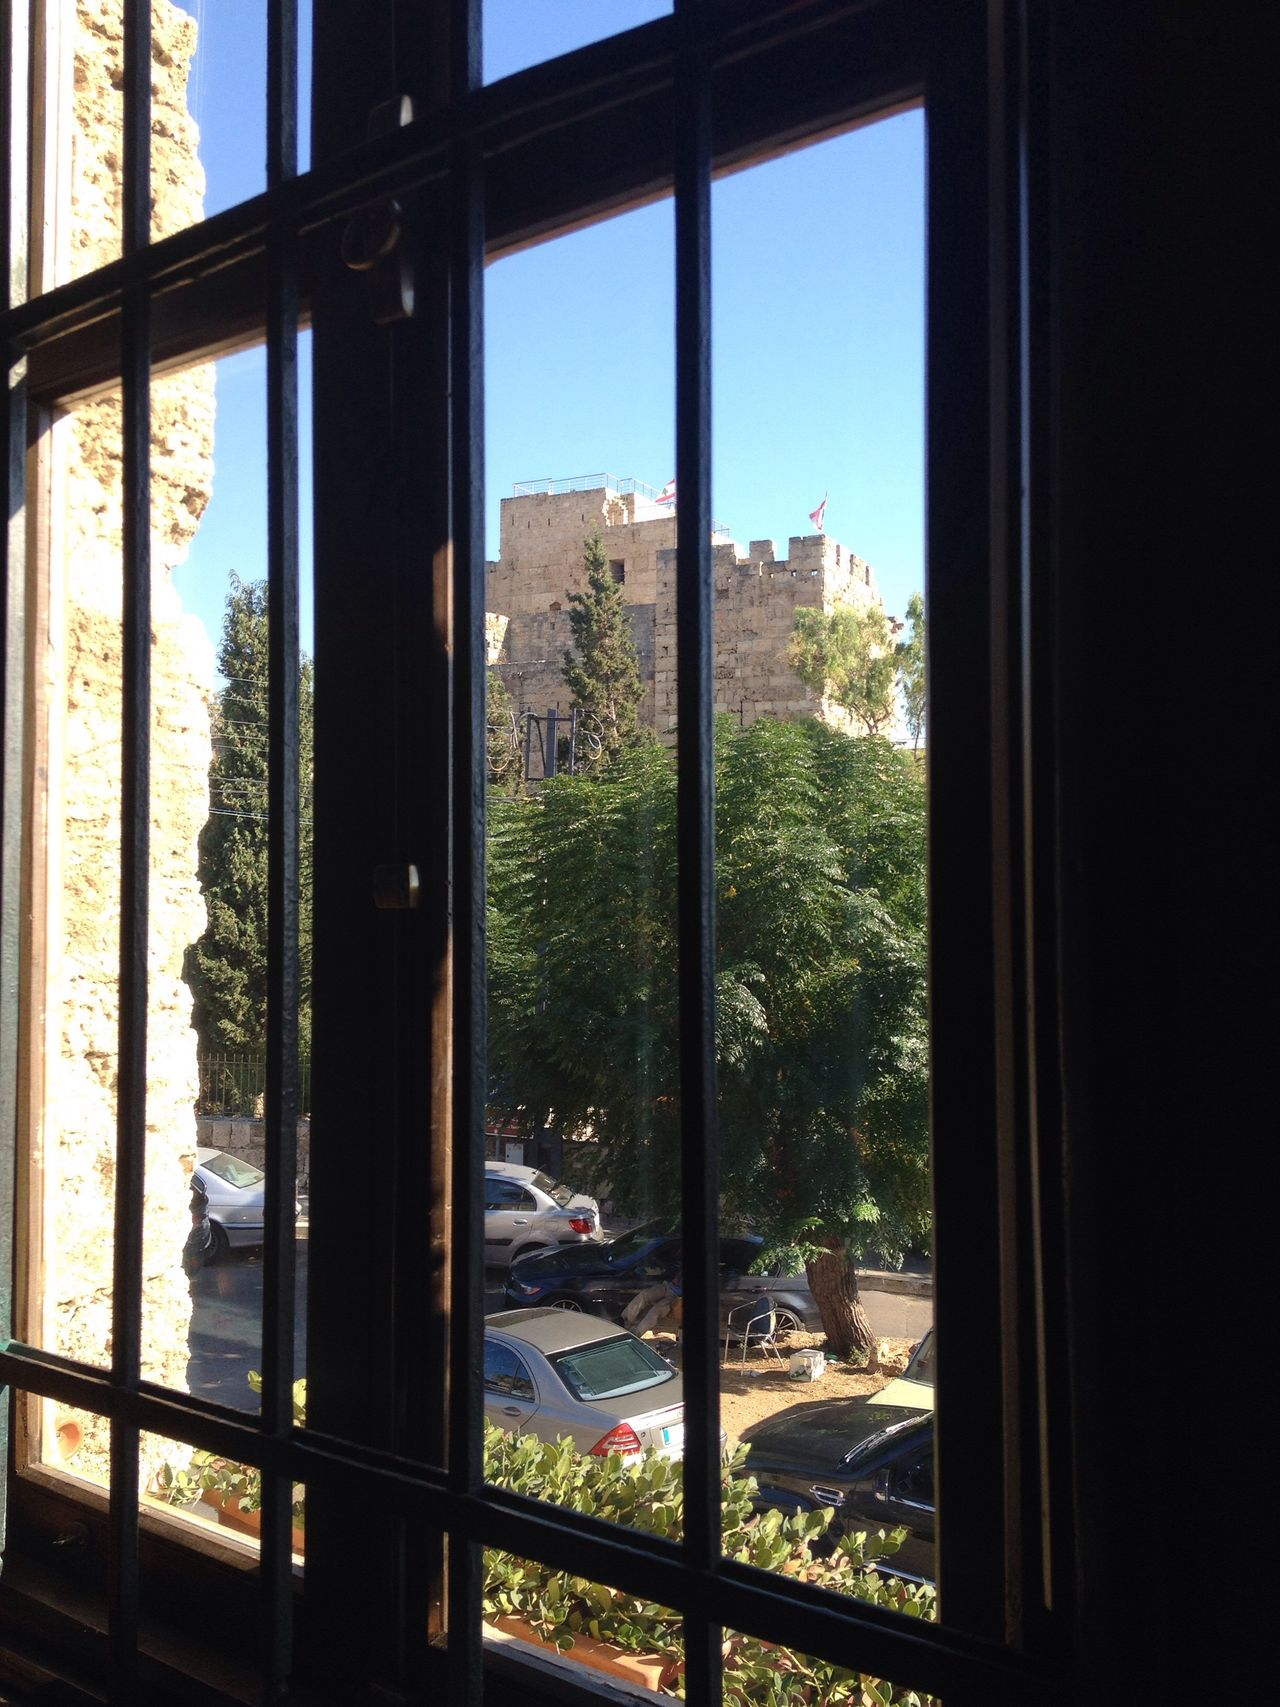 Through The Window Eating Lunch Byblos Crusadercastle Lebanon